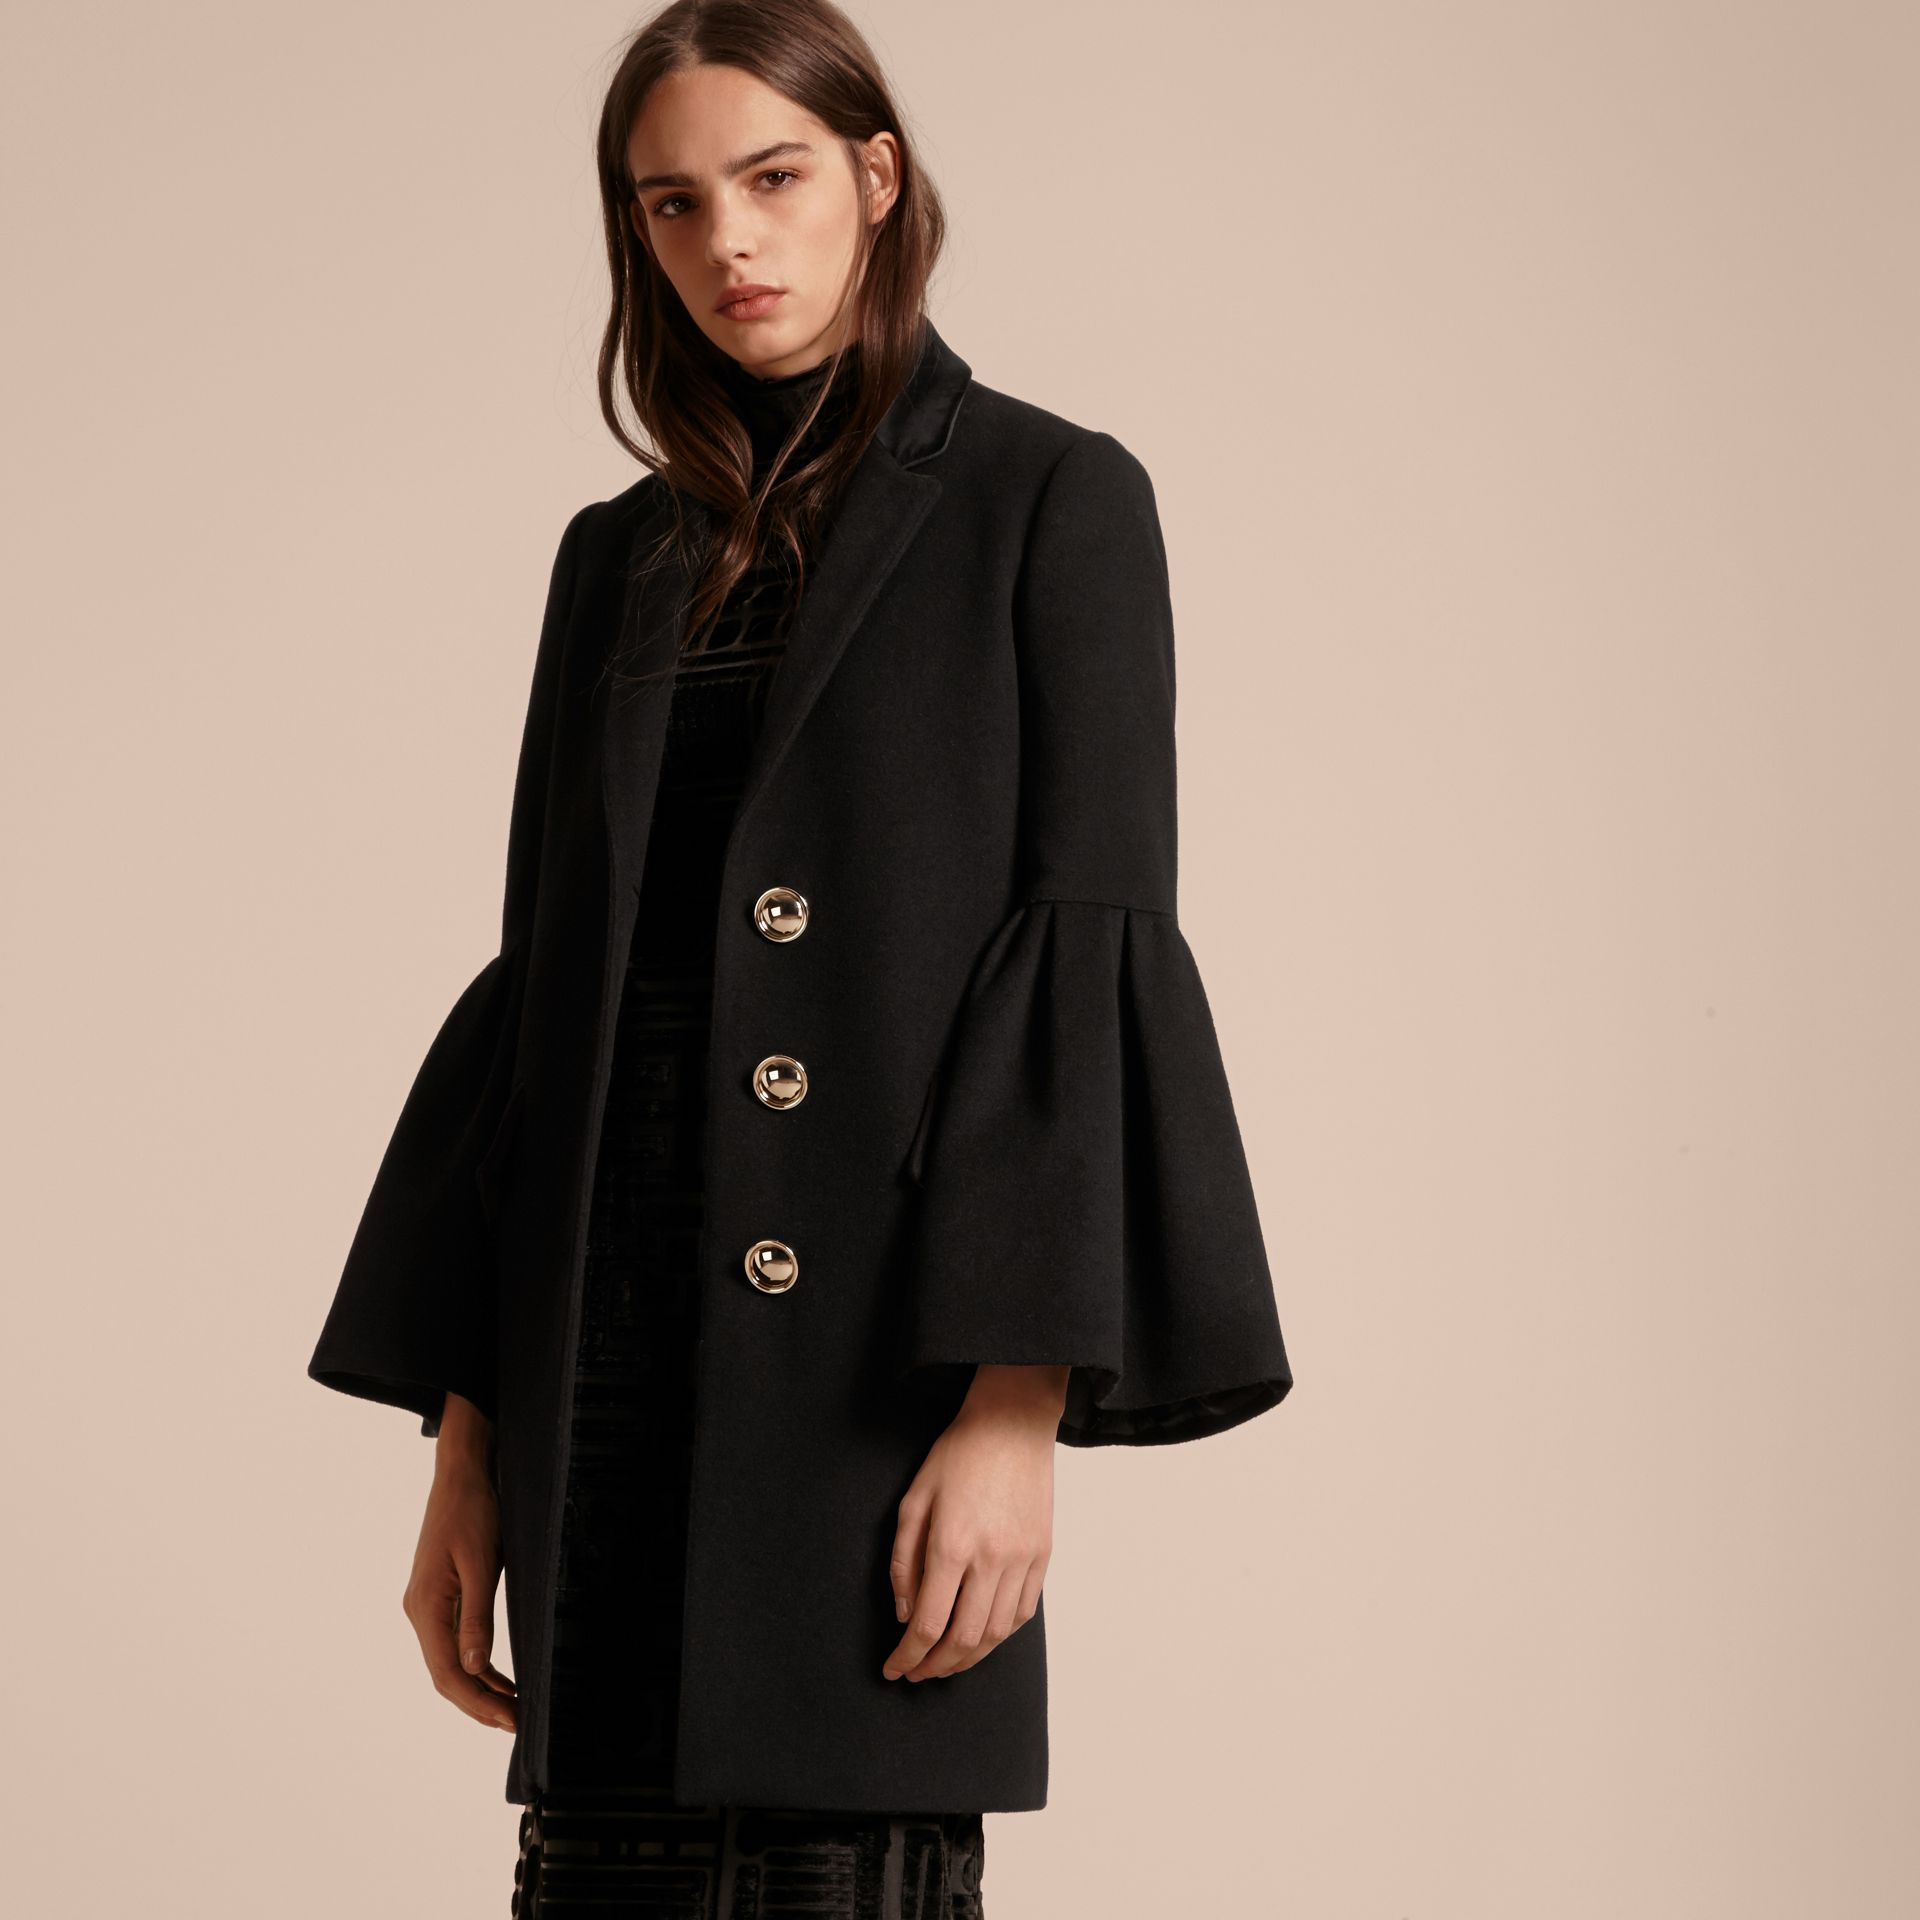 Black Tailored Wool Cashmere Coat with Bell Sleeves Black - gallery image 7